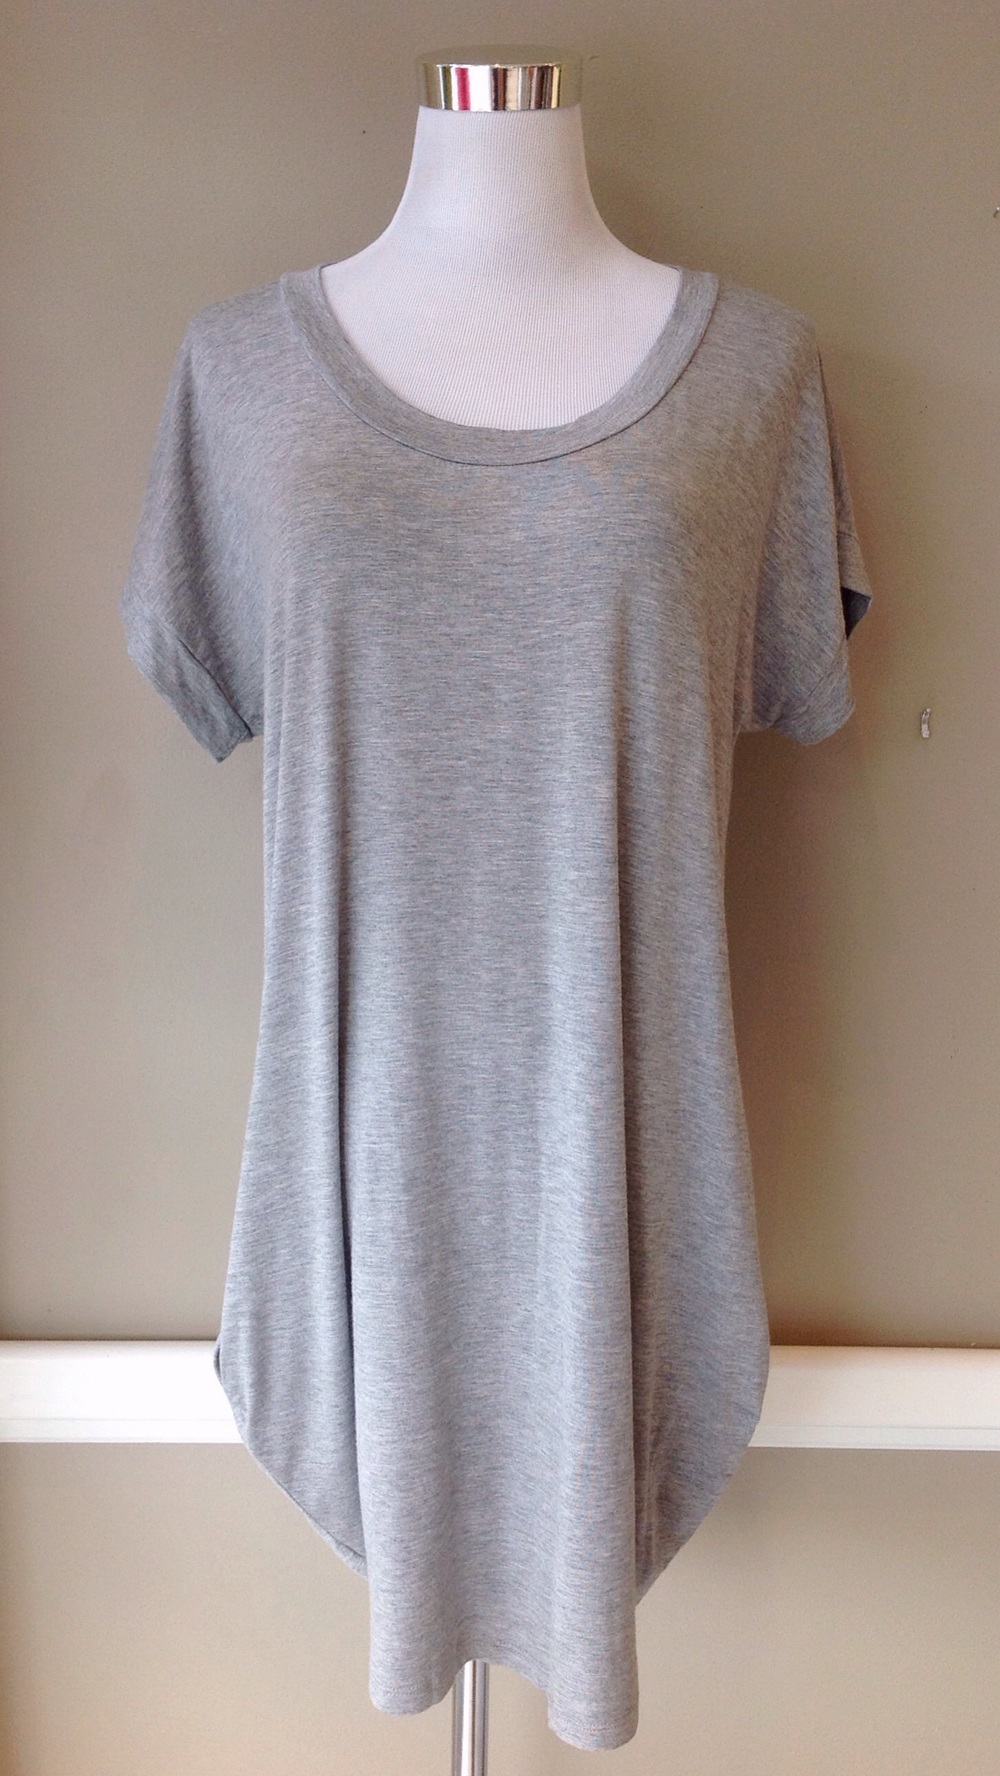 Heather grey knit shirt dress with side pockets, $34